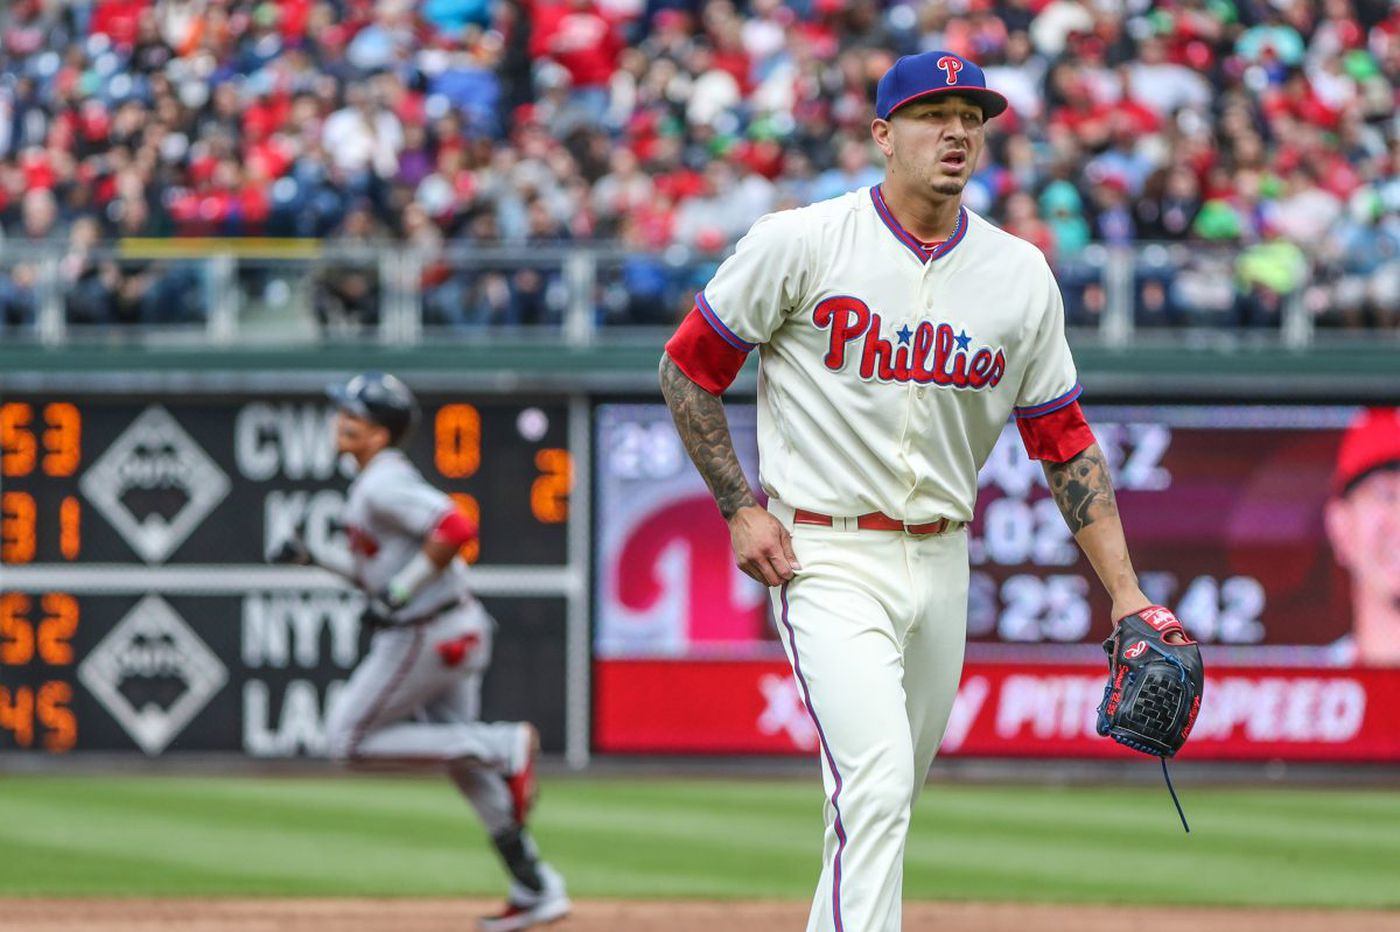 Vince Velasquez gets rocked as Phillies fall to Braves